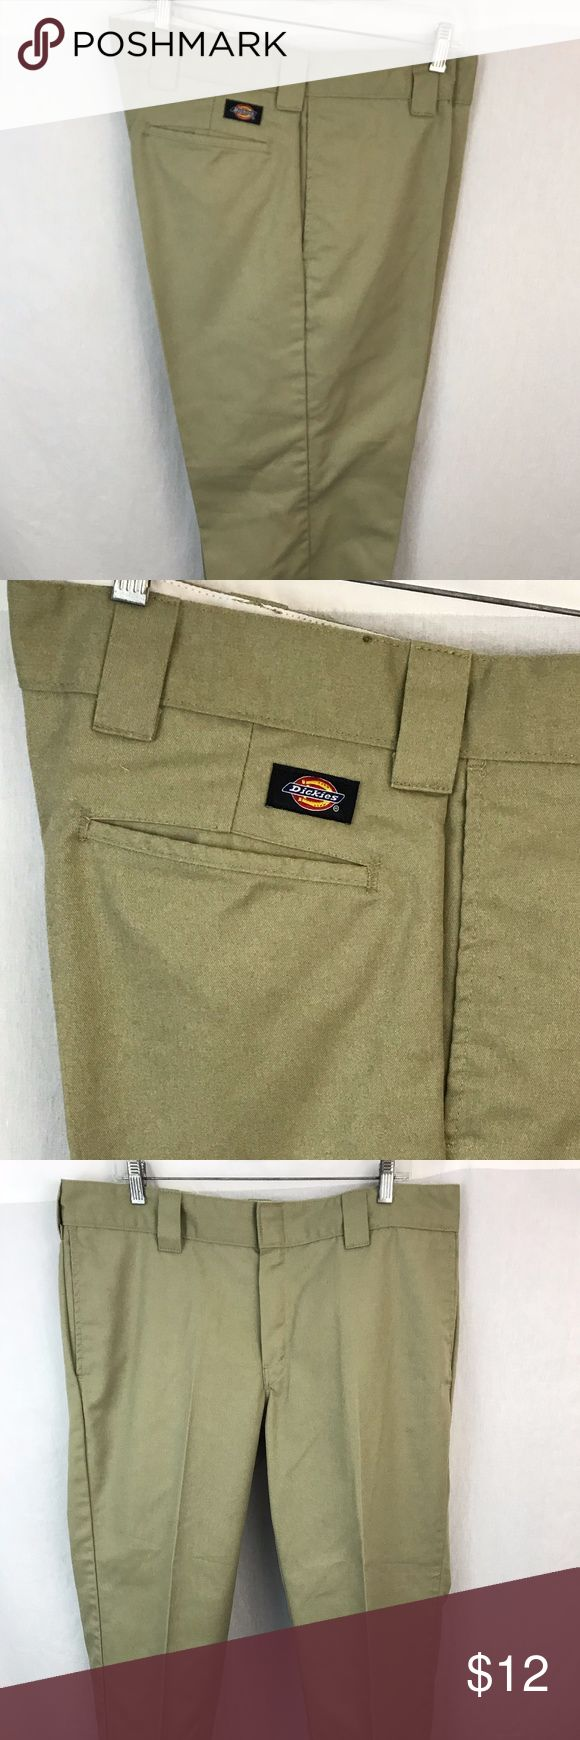 """Dickies Slim Straight Men's Tan Chinos Khakis Excellent pair of men's Dickies Slim Straight Chinos Khakis Work Pants  65% polyester/35% Cotton.  Flat front.   Great pre-owned condition.    Waist is 19.5"""" laying flat.  Inseam measures 30.""""  Leg opening = 8.5"""".  Thanks for looking and please feel free to ask questions. Dickies Pants Chinos & Khakis"""